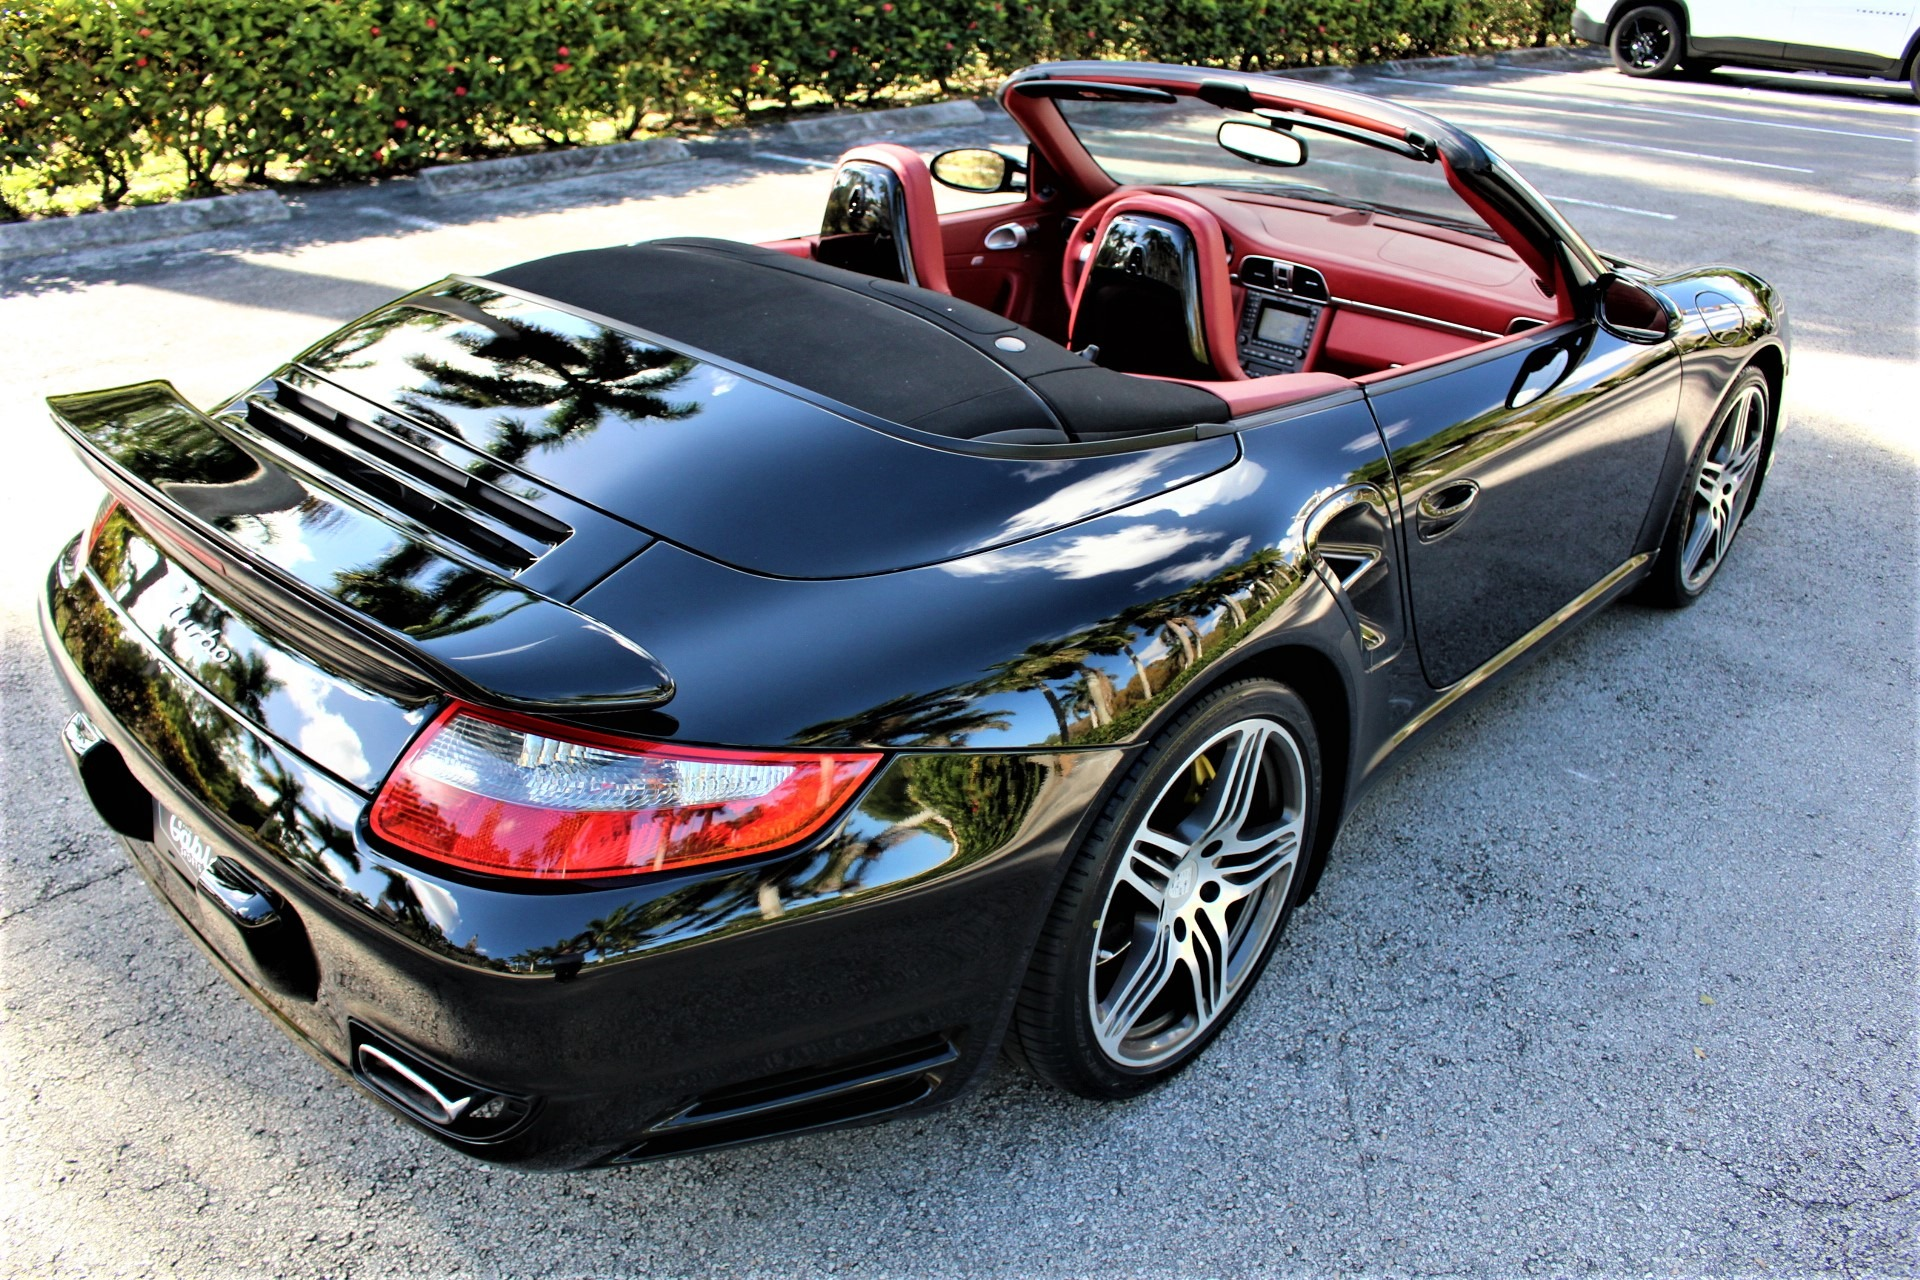 Used 2008 Porsche 911 Turbo for sale Sold at The Gables Sports Cars in Miami FL 33146 3